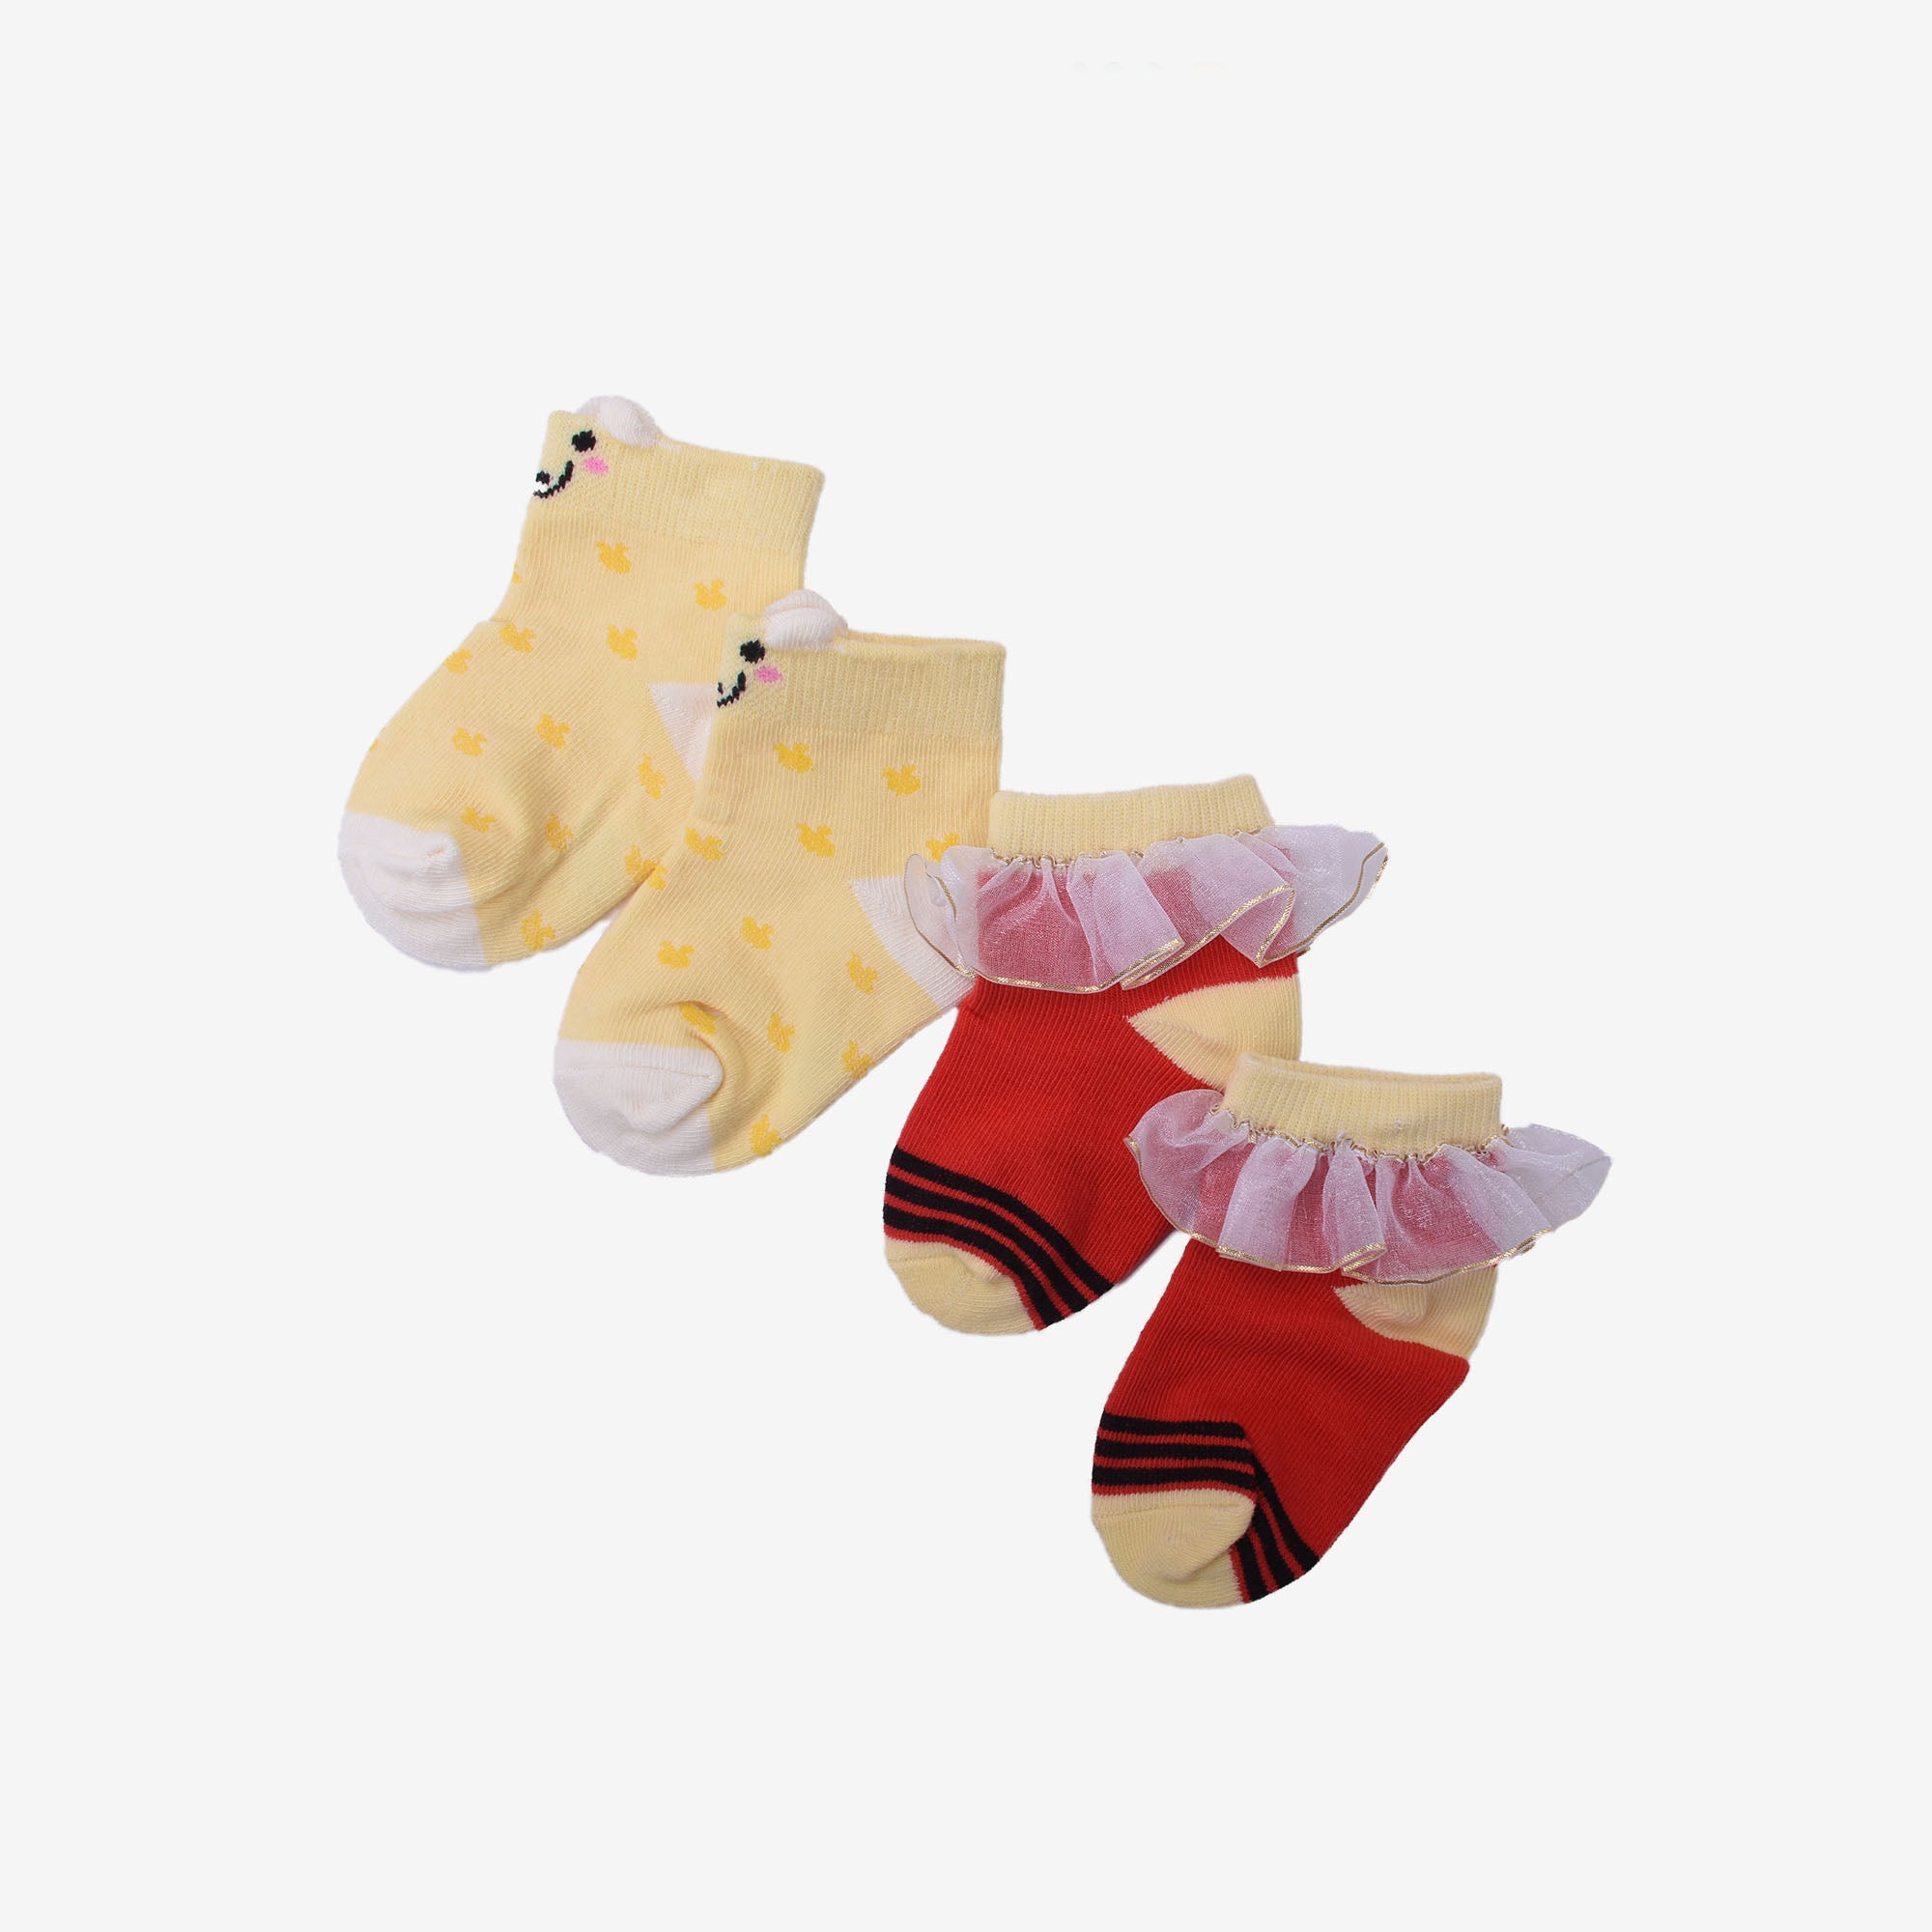 Honey Assorted Socks 2 in 1